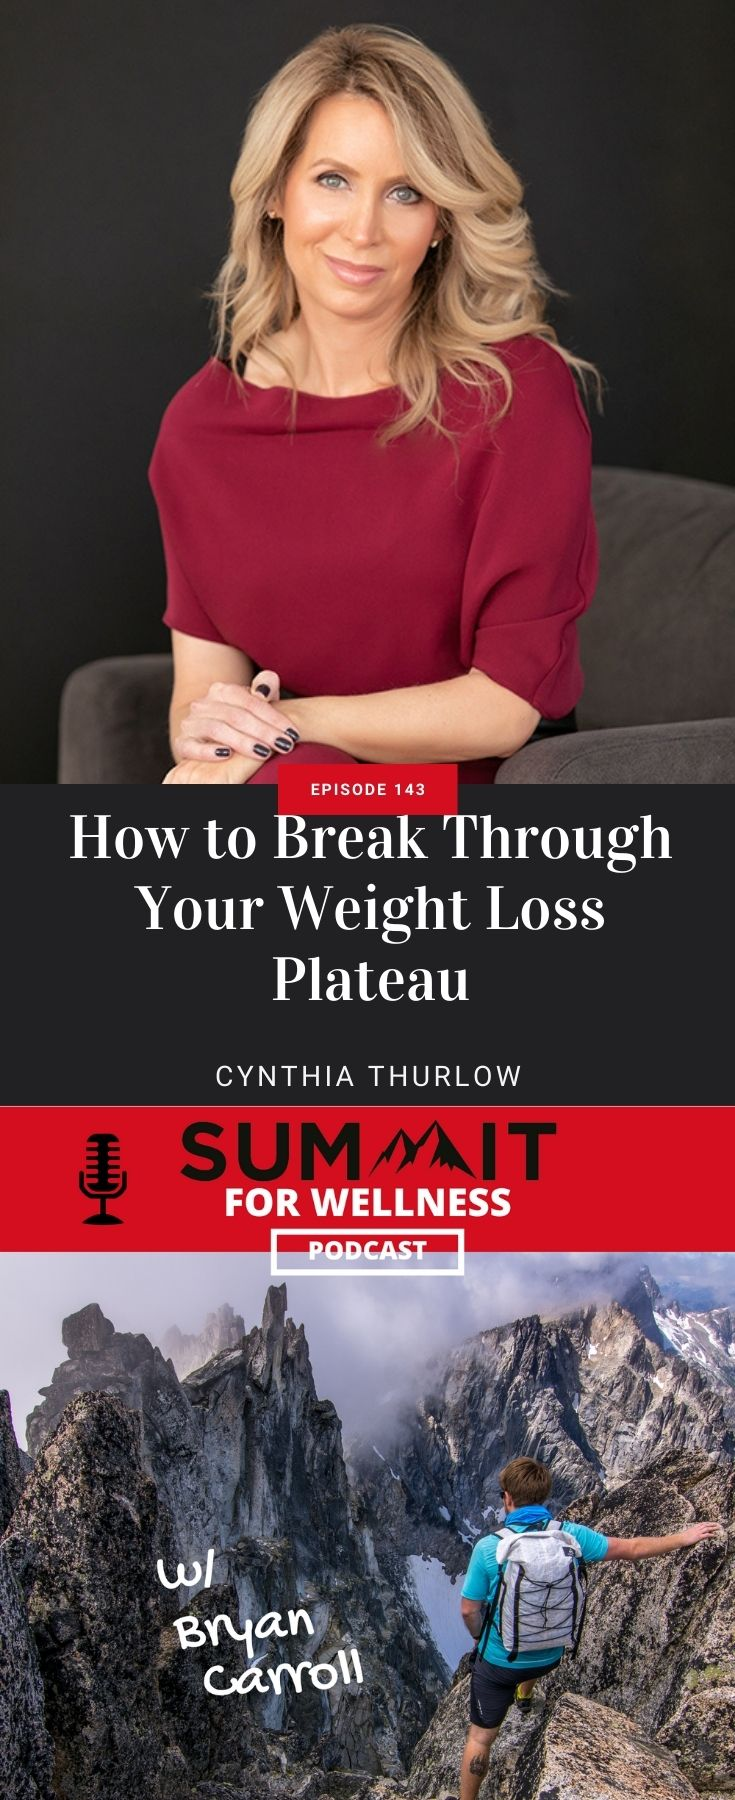 Learn from Cynthia Thurlow how to break through weight loss plateaus